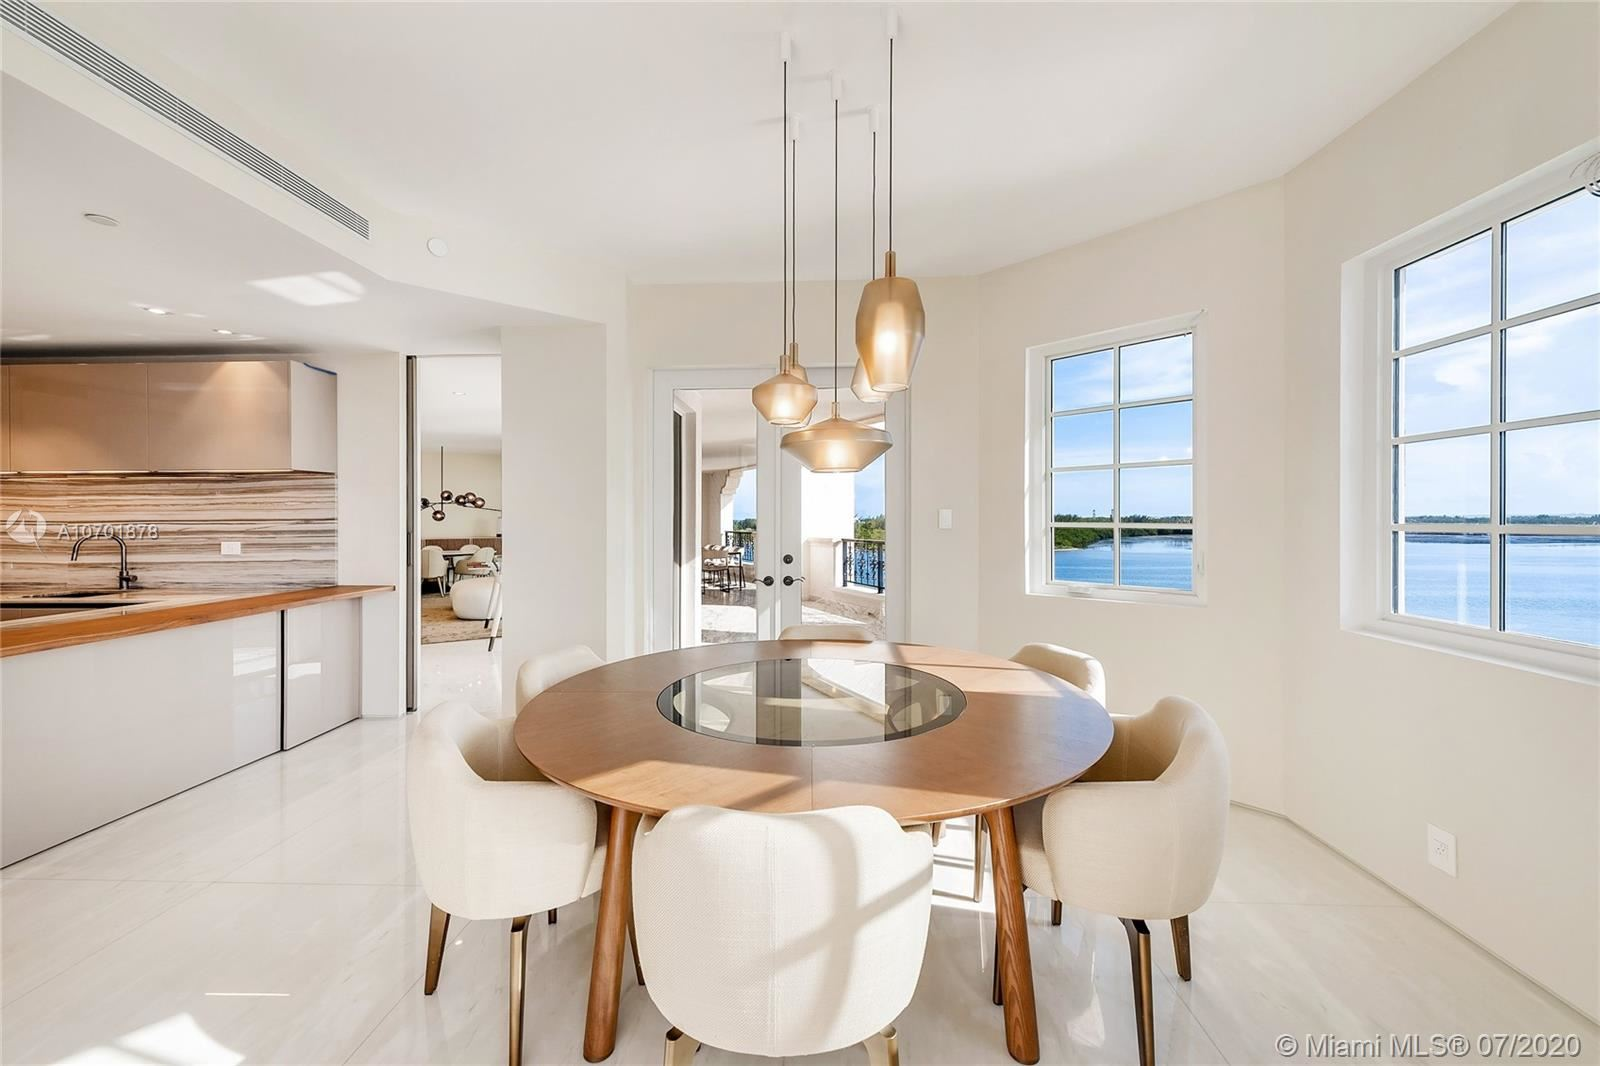 Photo 18 of Listing MLS a10701878 in 5292 Fisher Island Dr #5292 Miami FL 33109